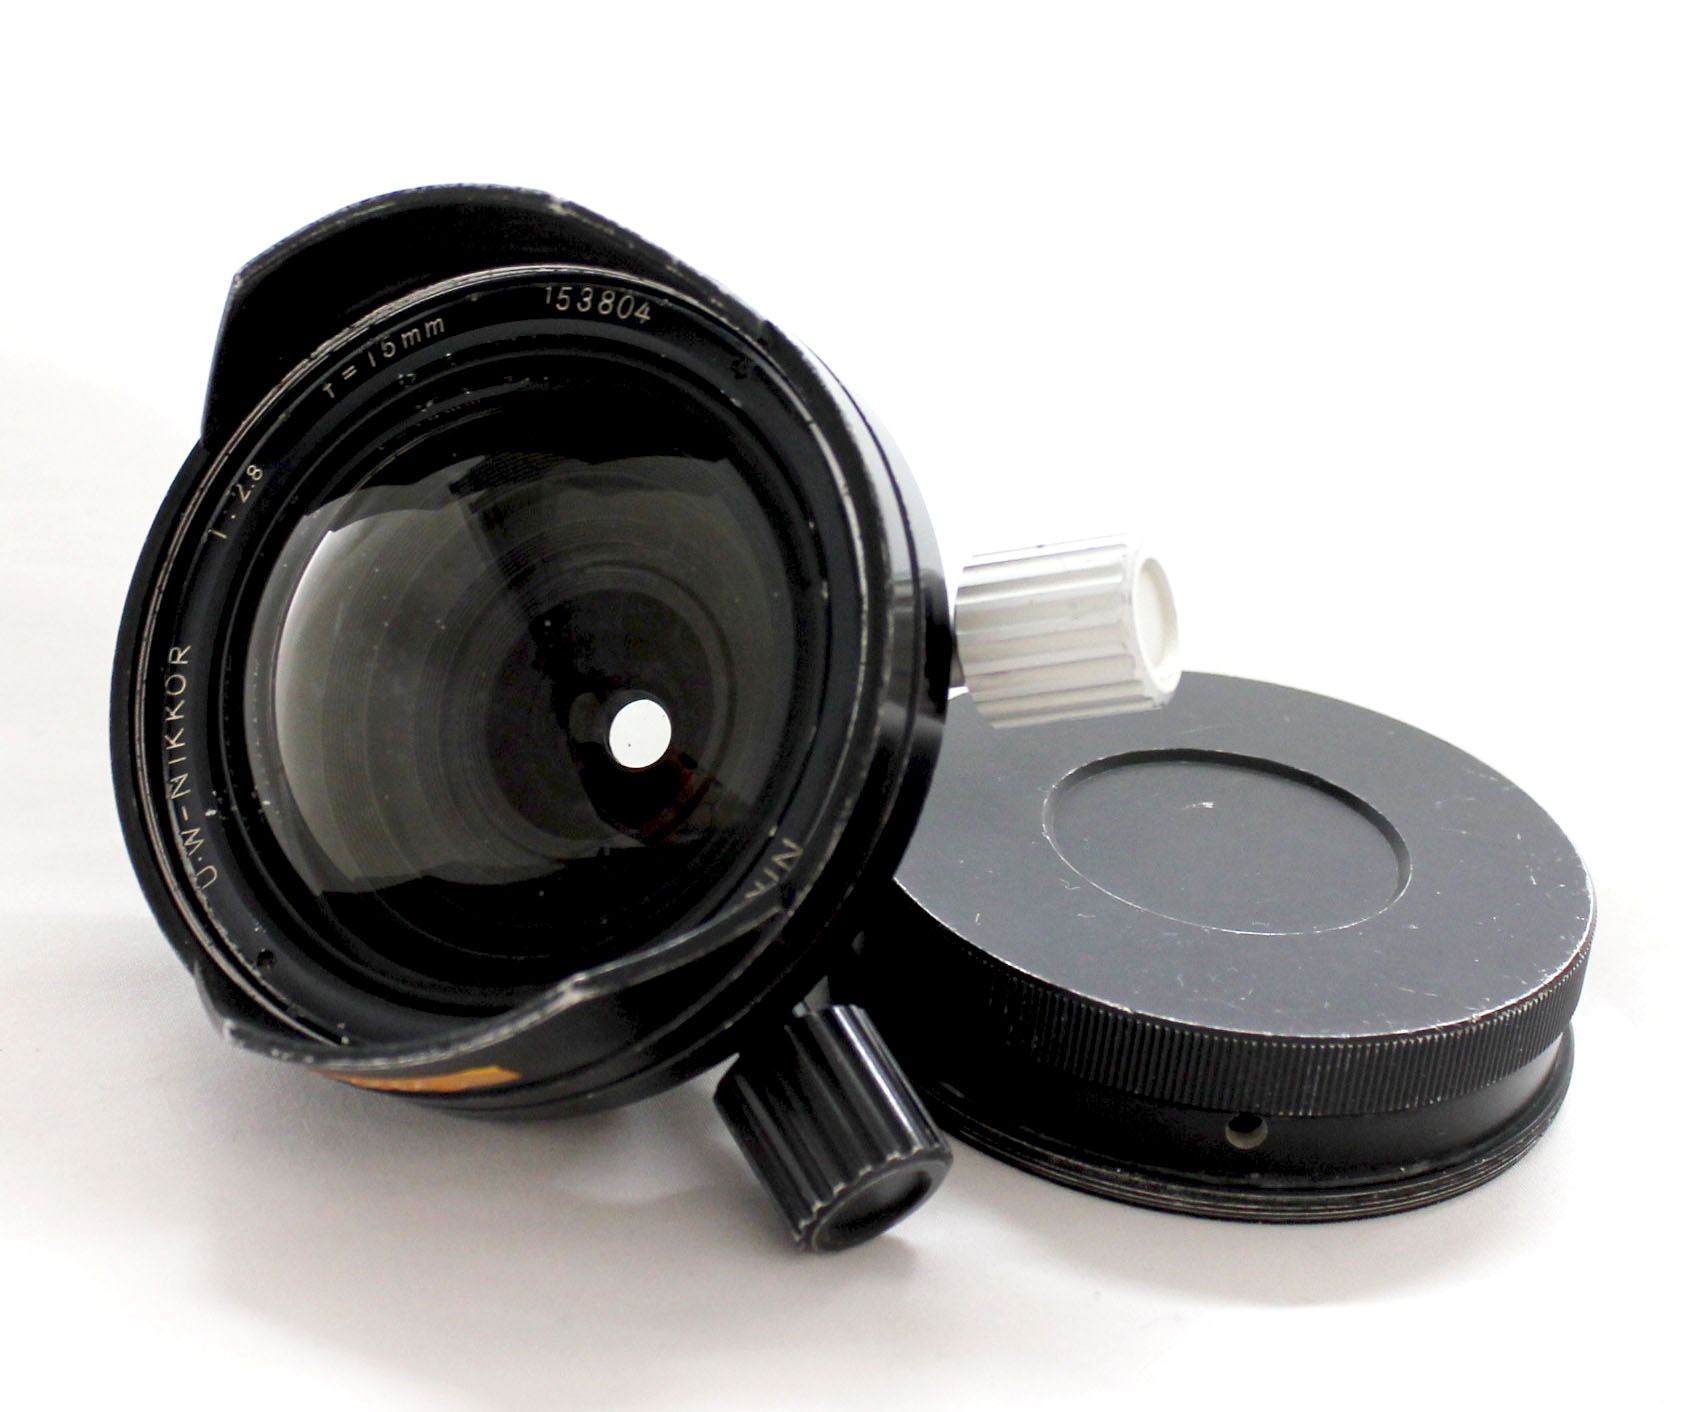 Nikon UW Nikkor 15mm F/2.8 Wide Angle Under Water Lens for Nikonos from Japan